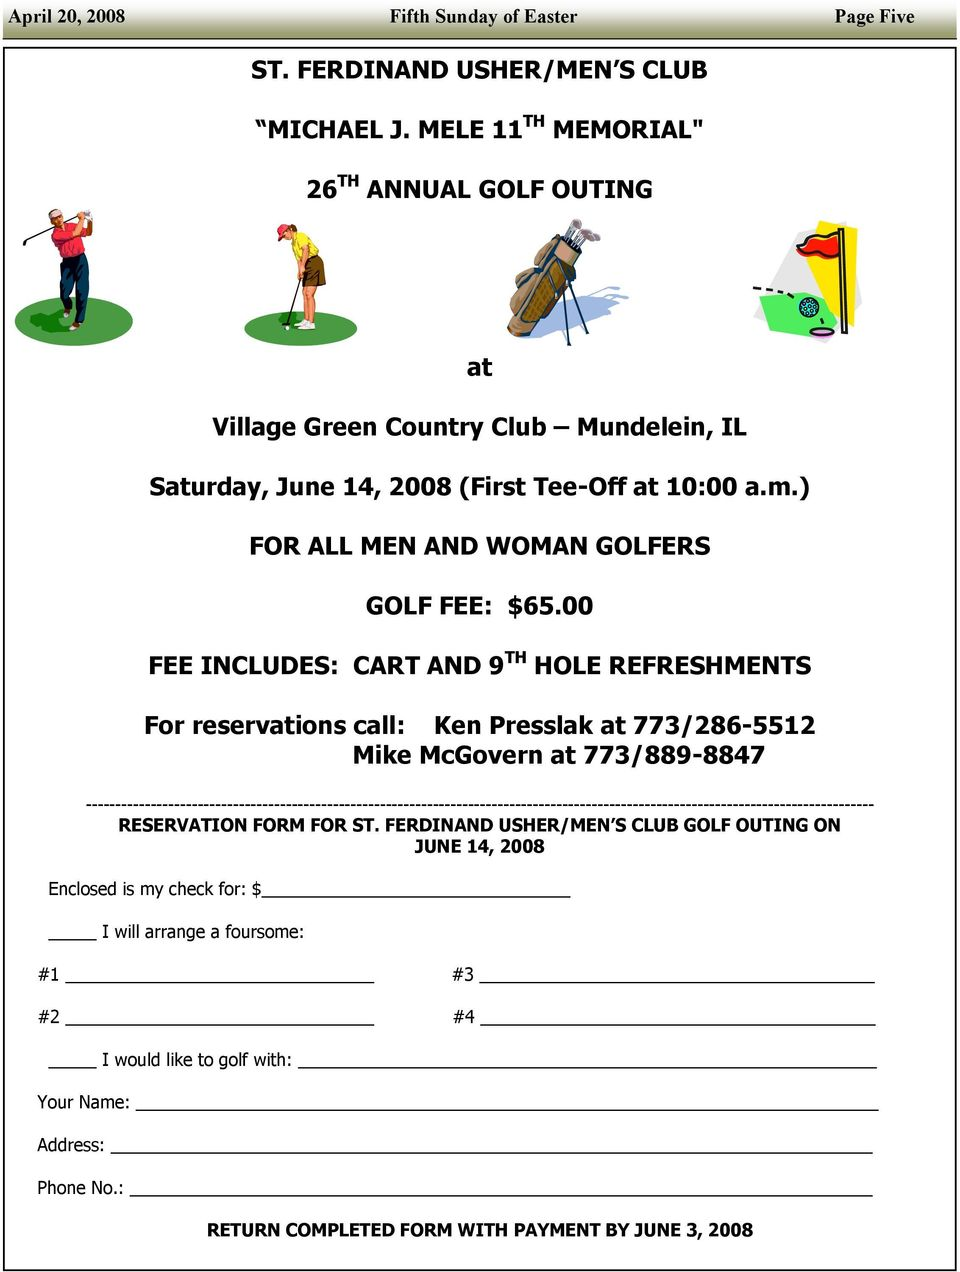 00 FEE INCLUDES: CART AND 9 TH HOLE REFRESHMENTS For reservations call: Ken Presslak at 773/286-5512 Mike McGovern at 773/889-8847